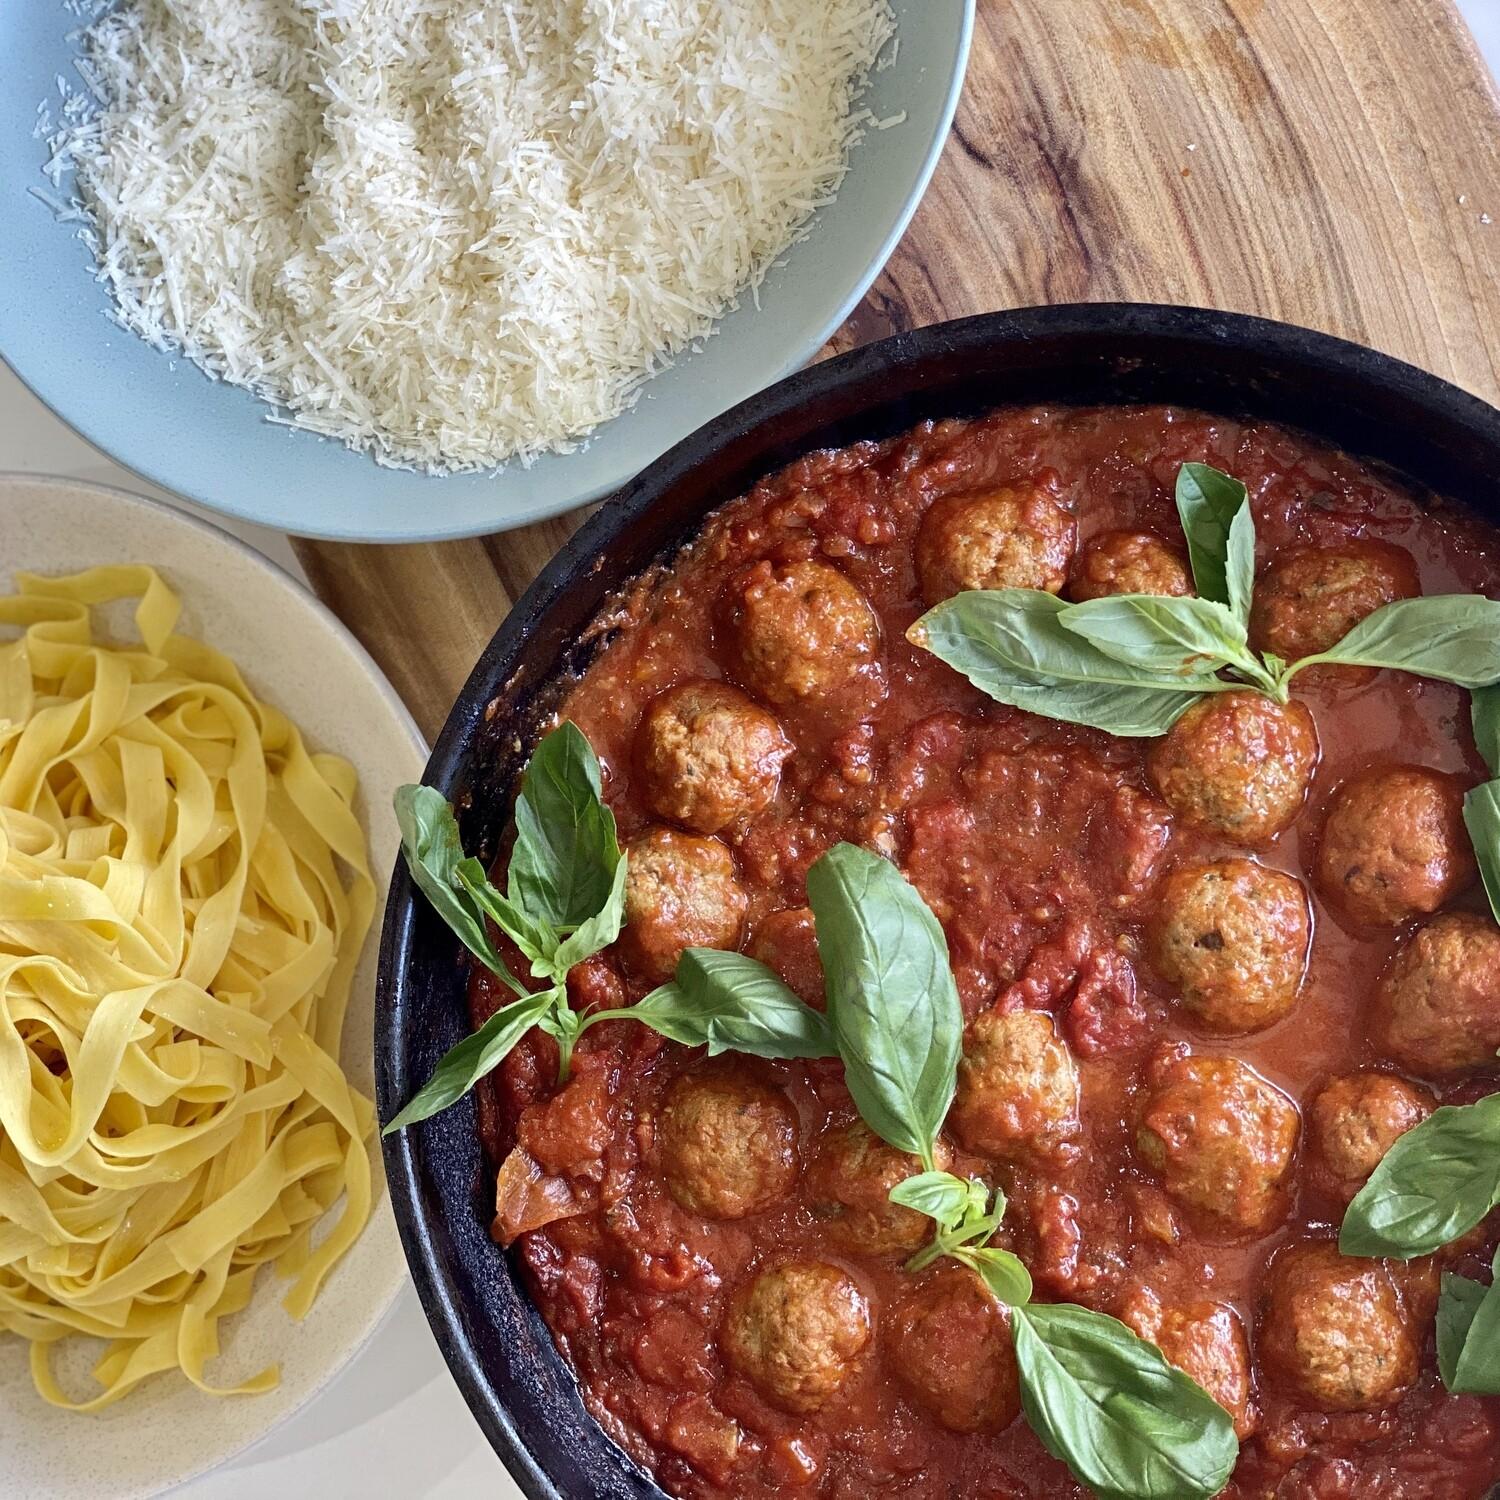 Italian Pork and Veal Meatballs in Tomato and Basil Sauce (Serves 3-4)